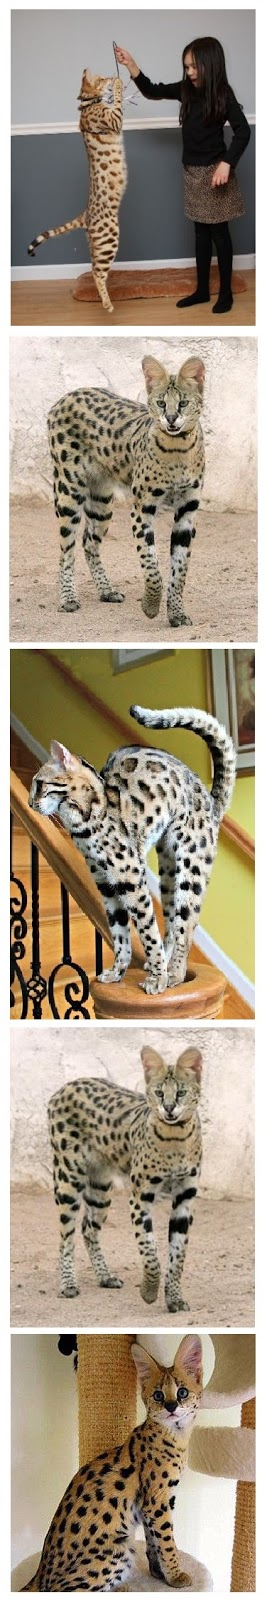 Animals Planet, The elegant savannah cats